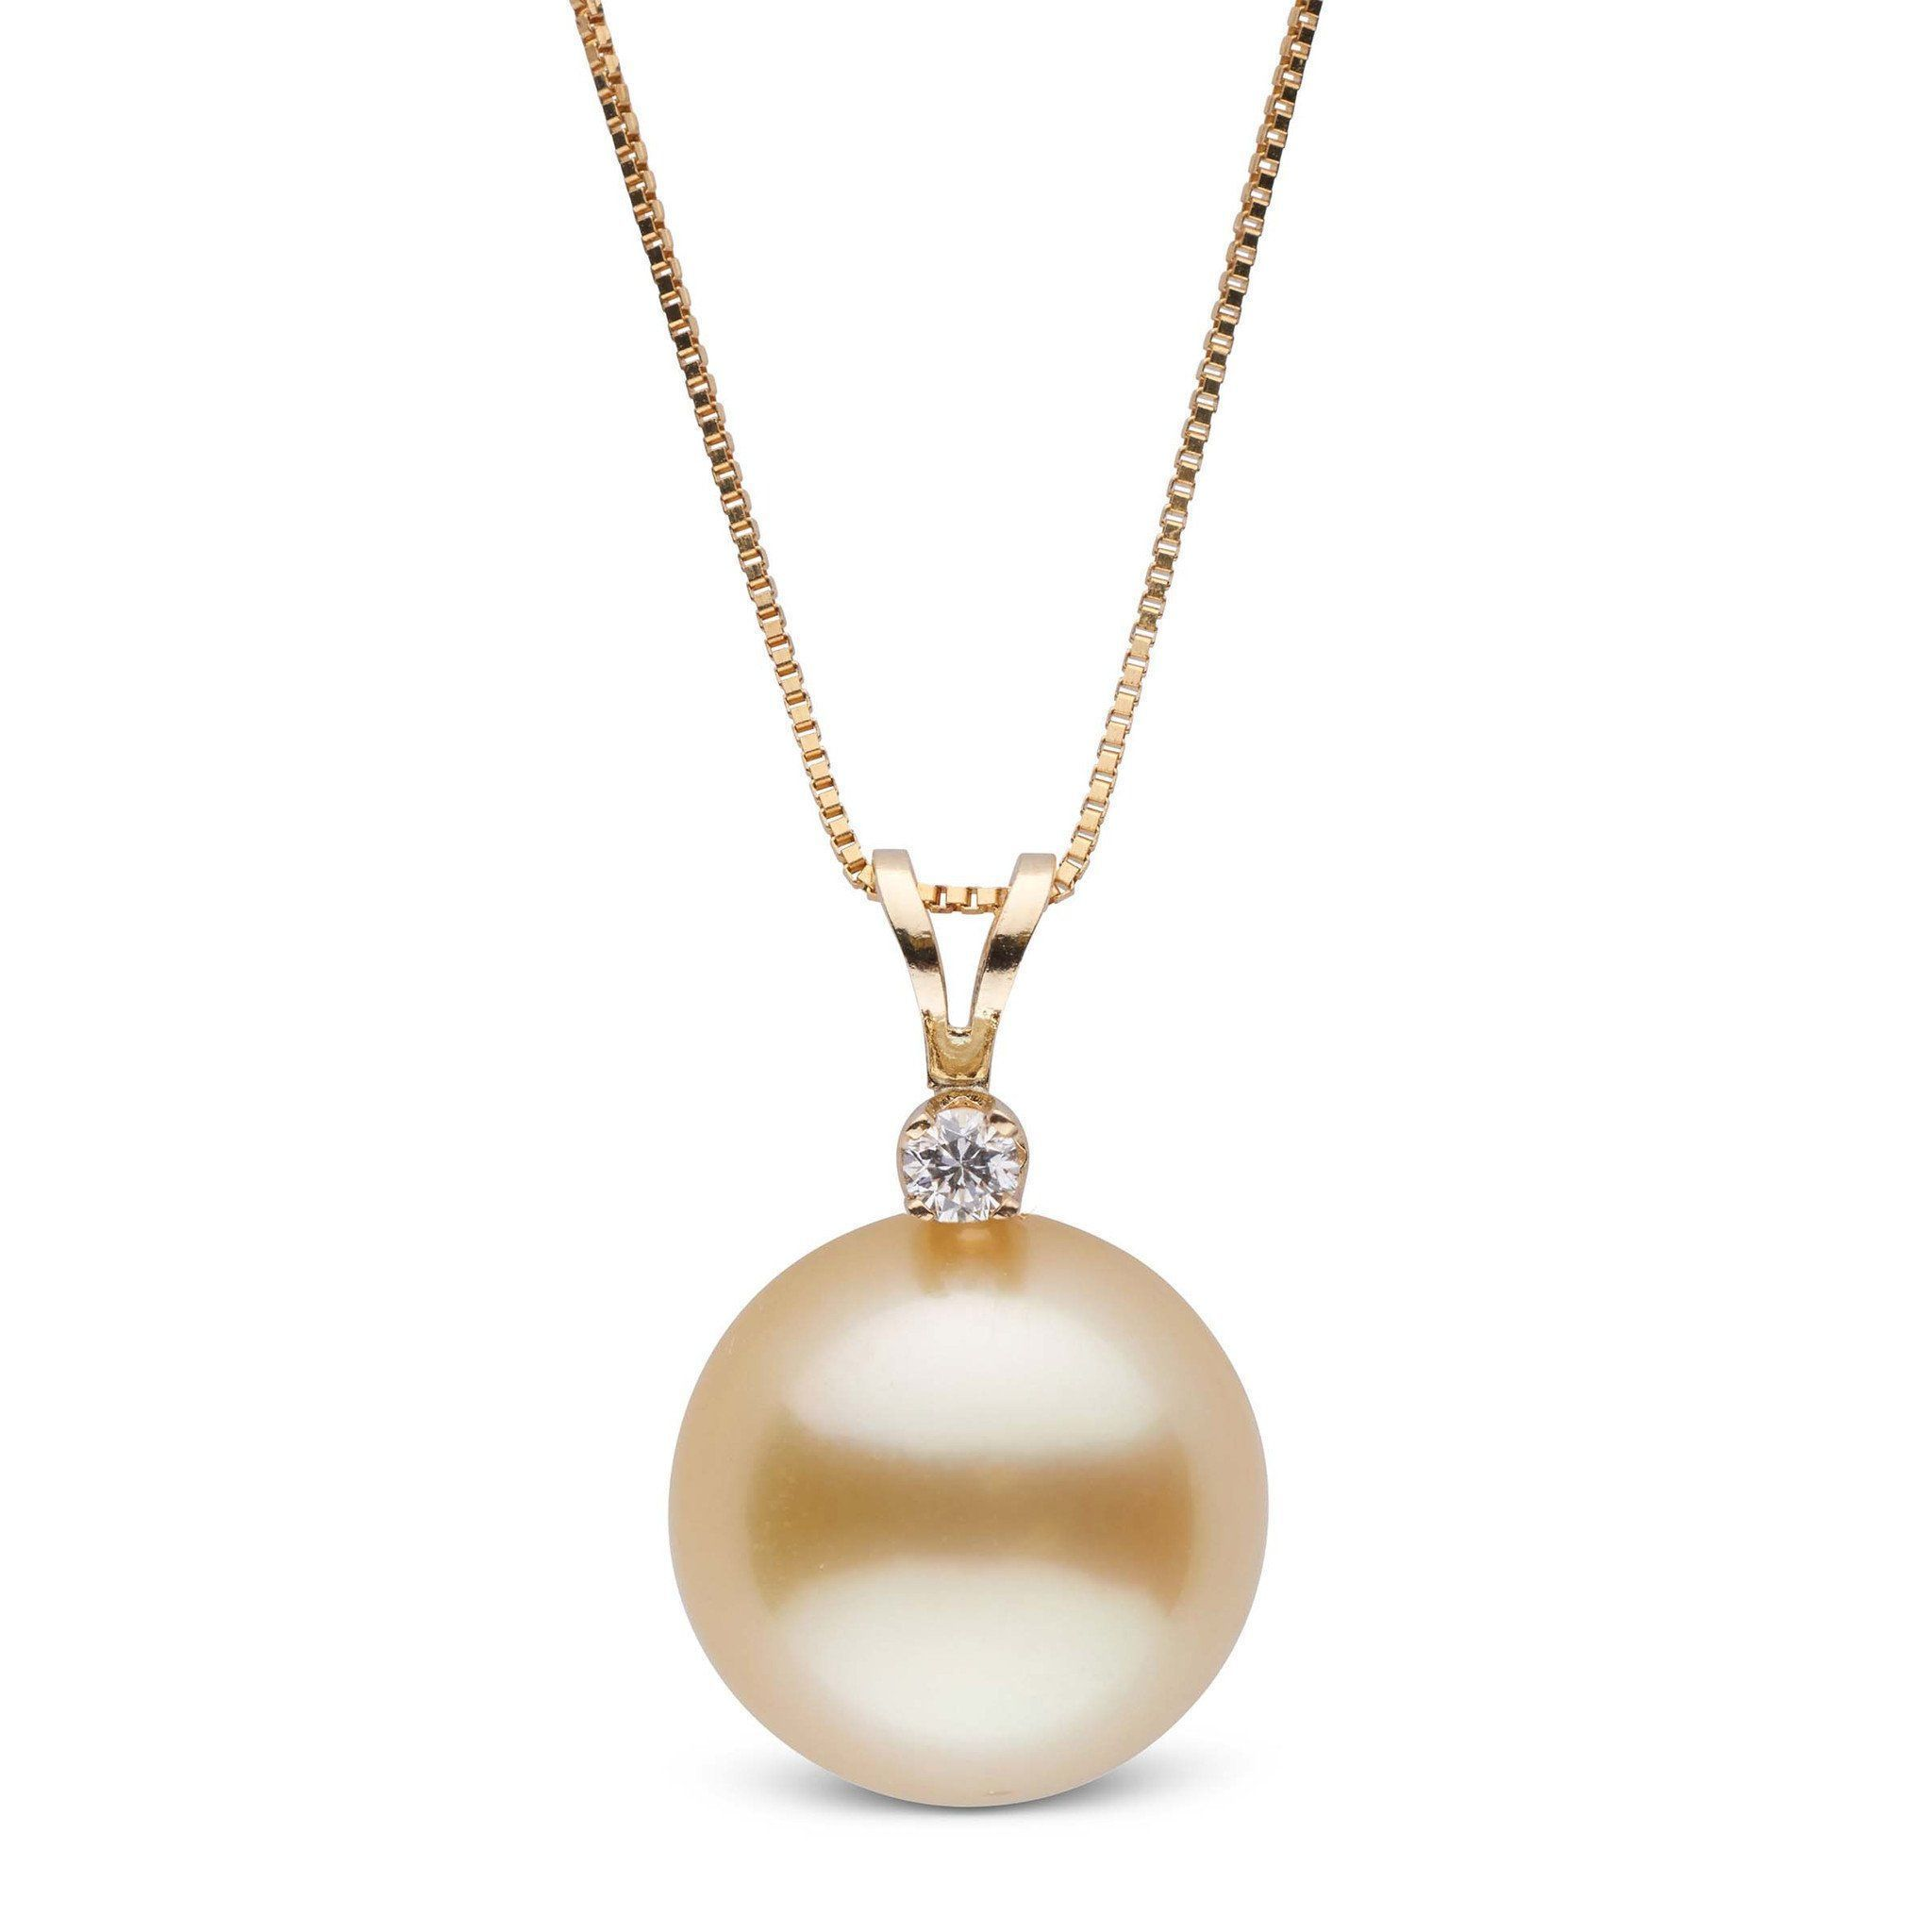 Harmony Collection Golden 11.0-12.0 mm South Sea Pearl & Diamond Pendant